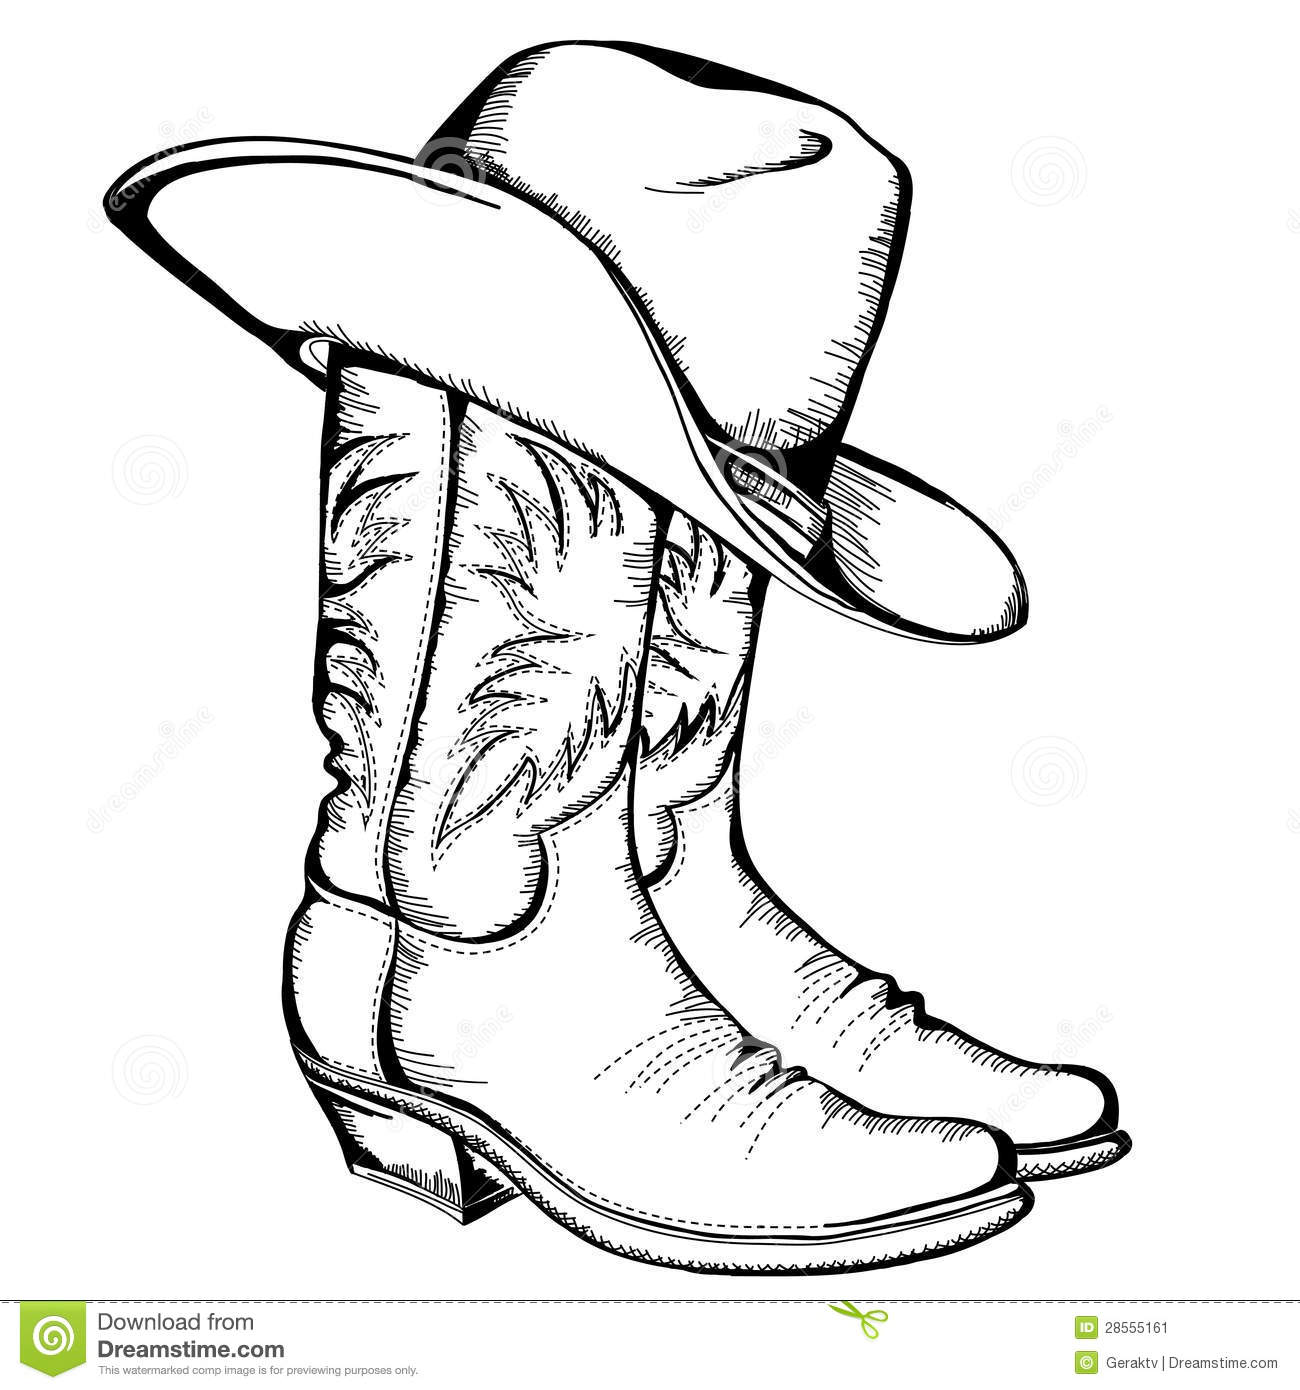 Cowboy boots and hat. stock vector. Illustration of boots ...